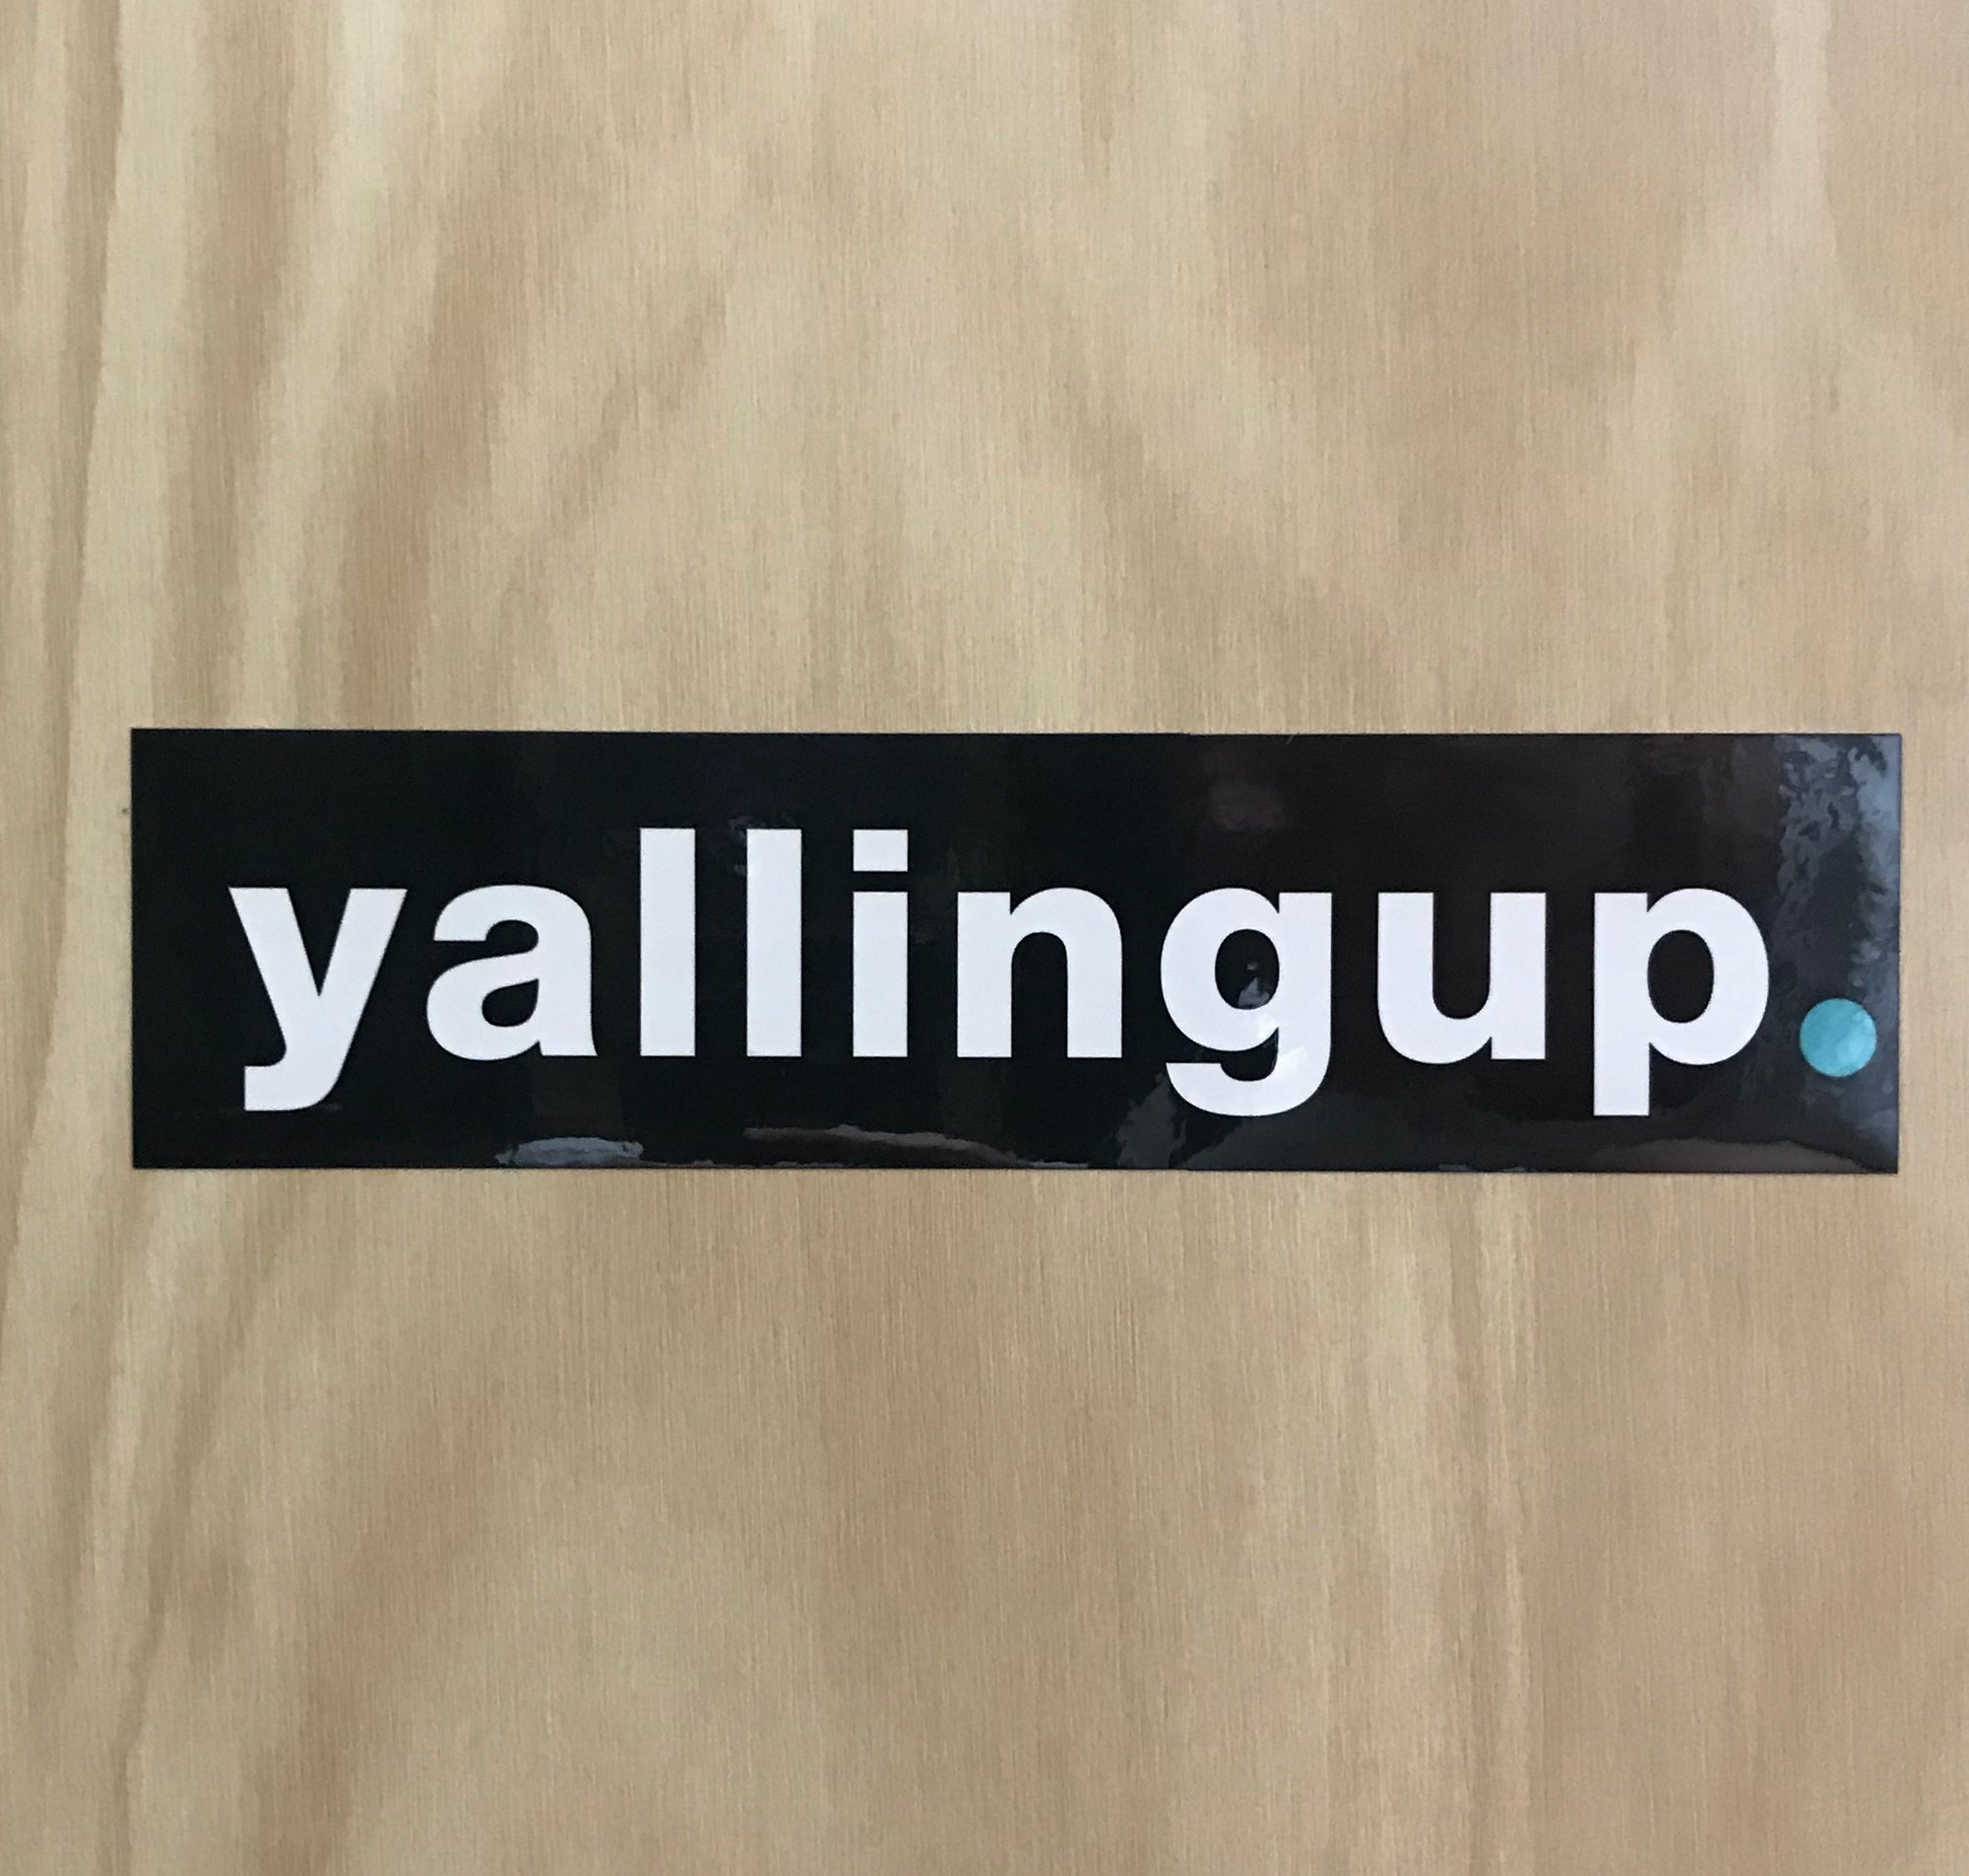 'Yallingup' Sticker - Board Store Board StoreSticker